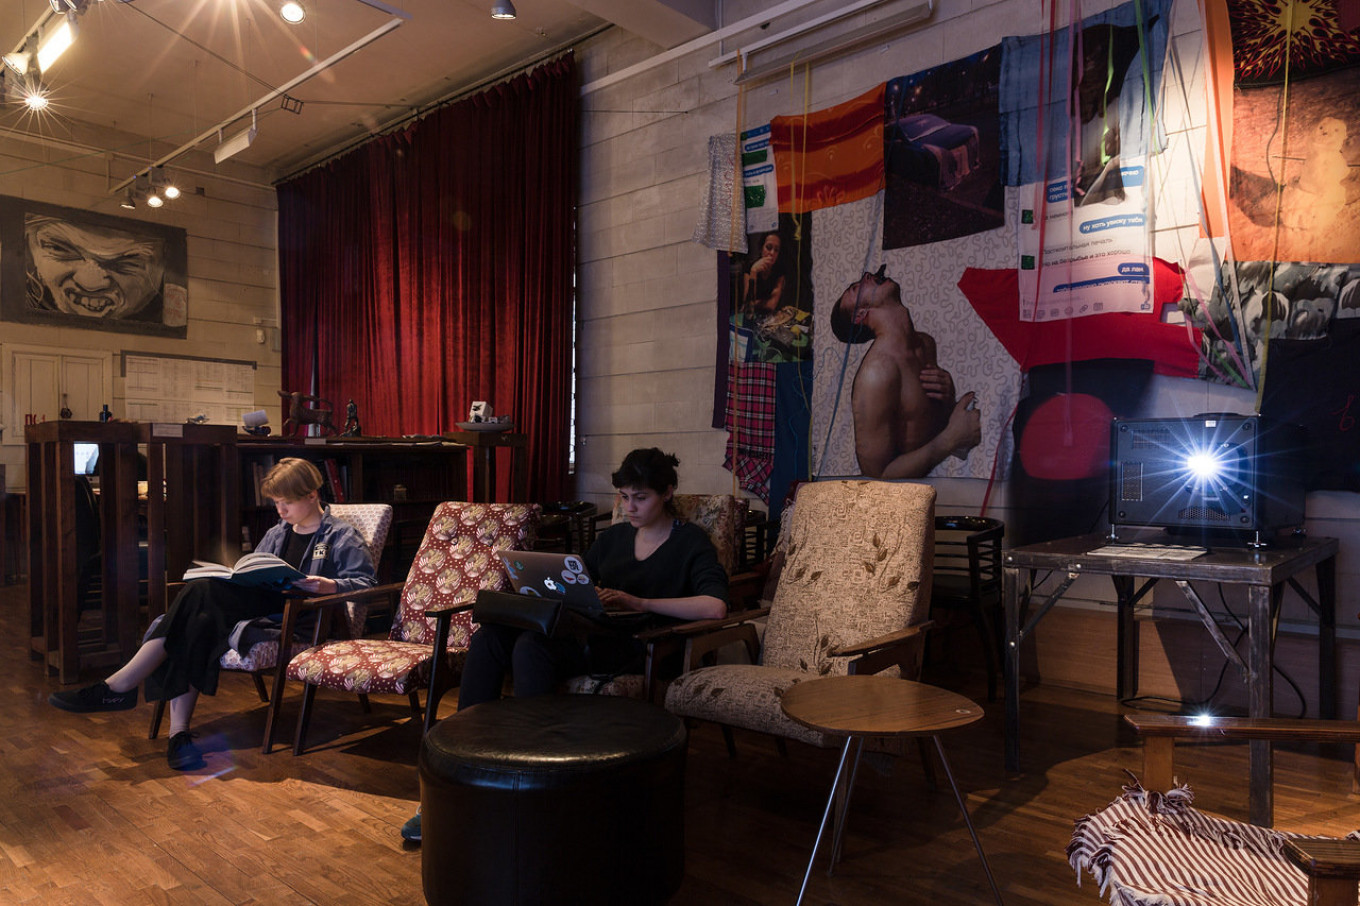 Visitors are ushered into a cozy, bohemian cinema for the event's grand finale.  Evgeny Alekseev / Tretyakov Gallery